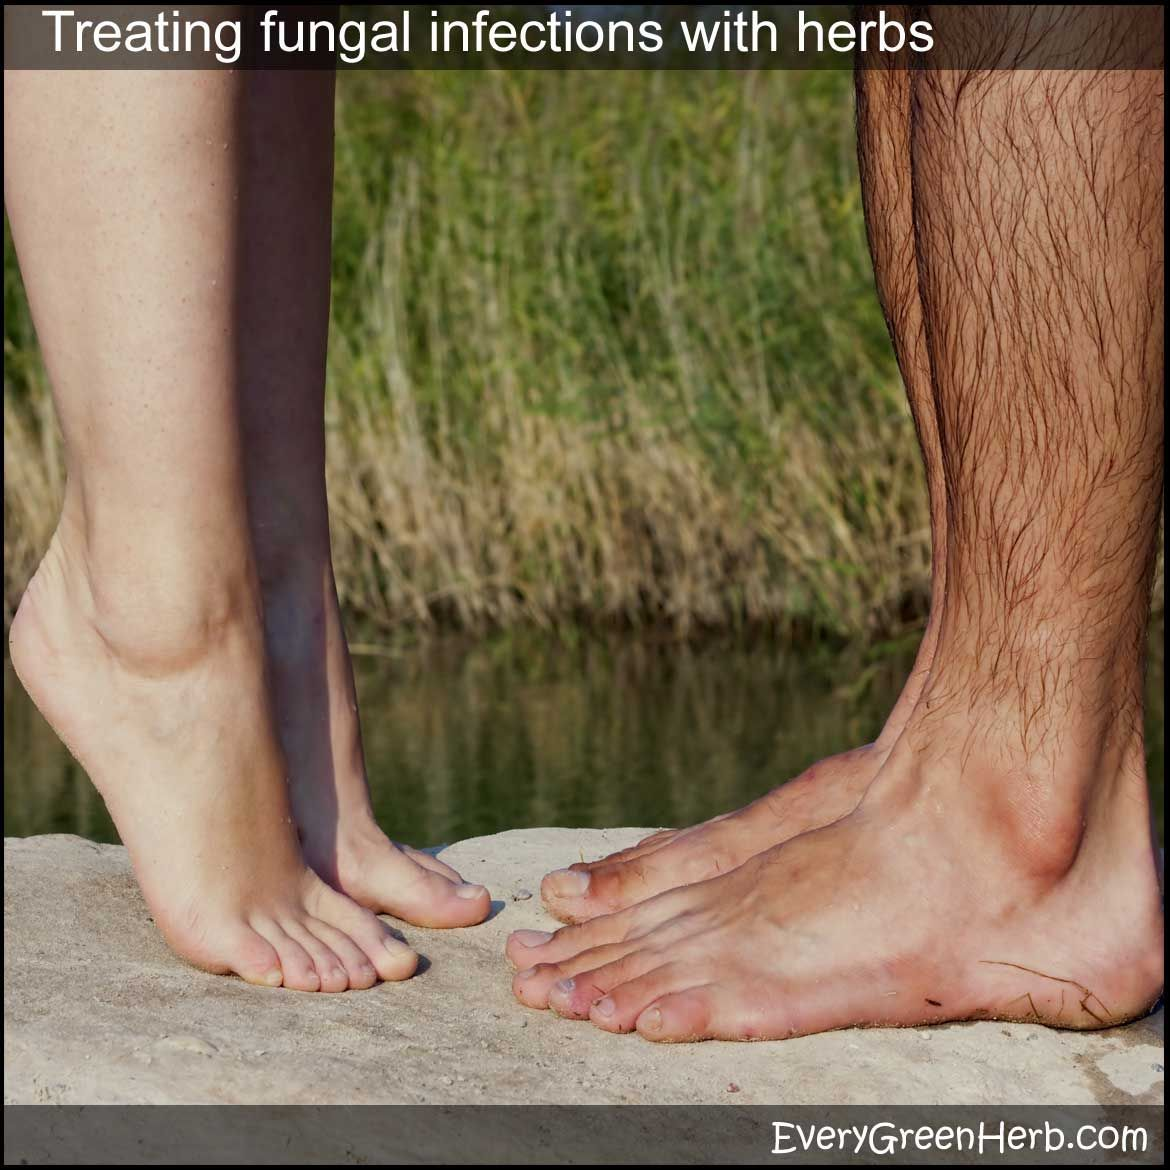 Find tips for treating fungal infection with home remedies and